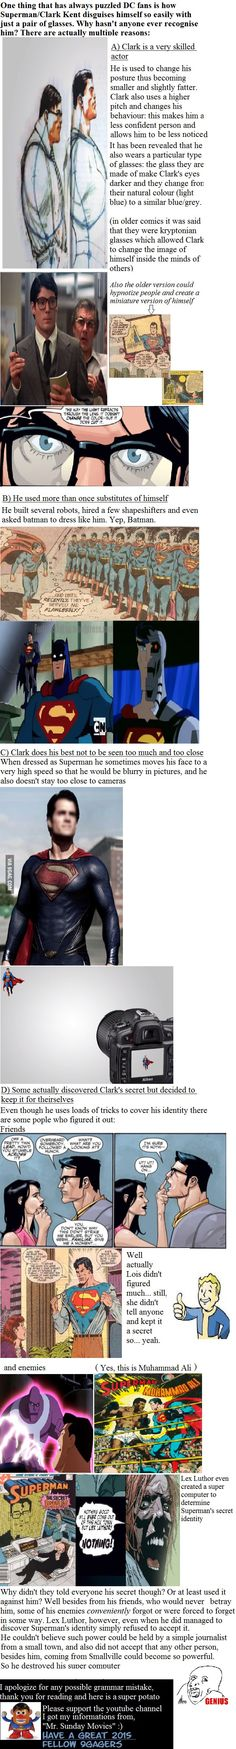 How can Superman maintain a secret identity with just a pair of glasses and some new clothes?